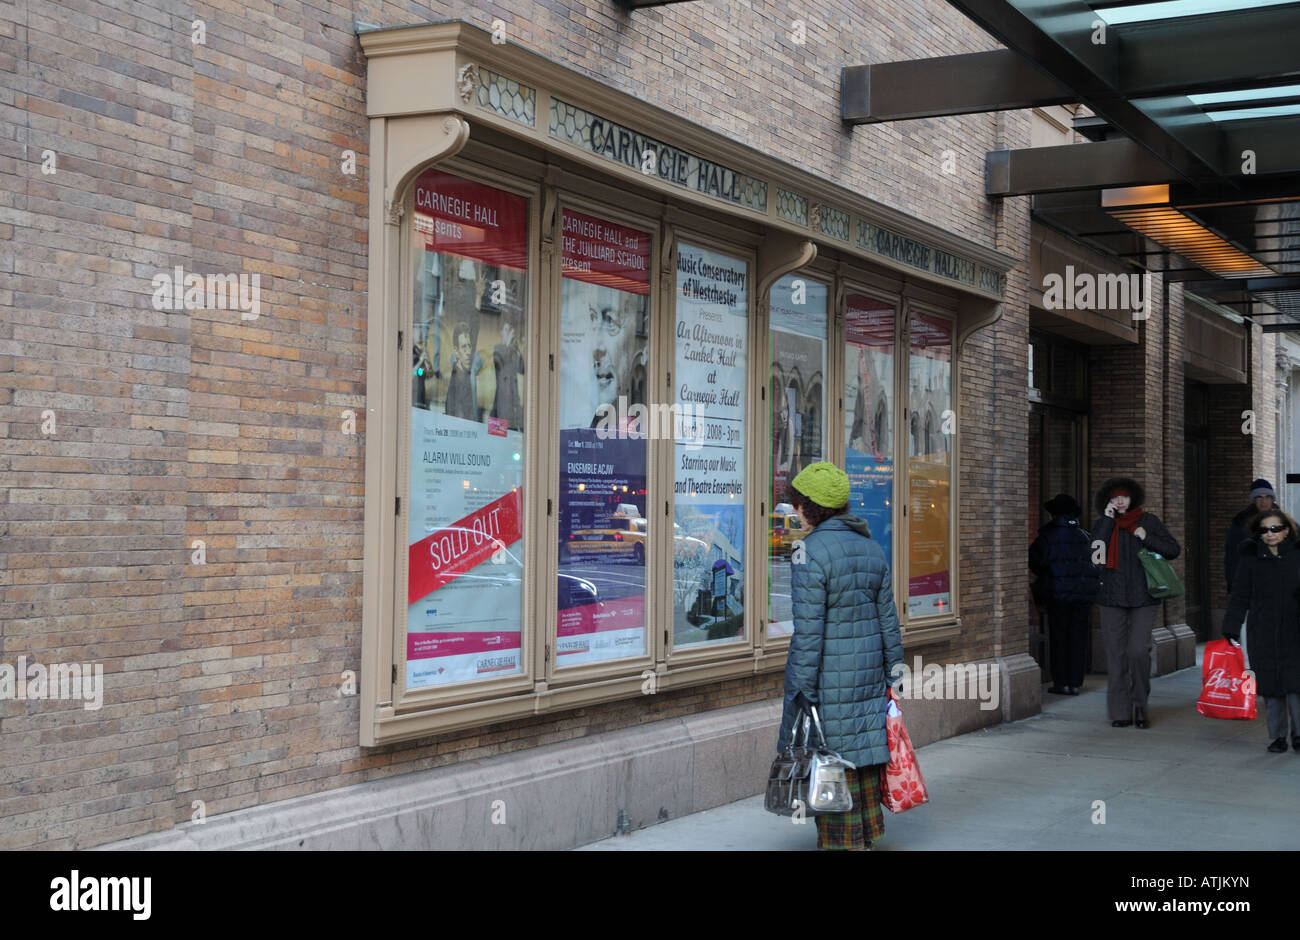 A woman reads ads for upcoming concerts on the outside of New York City's famed Carnegie Hall. - Stock Image